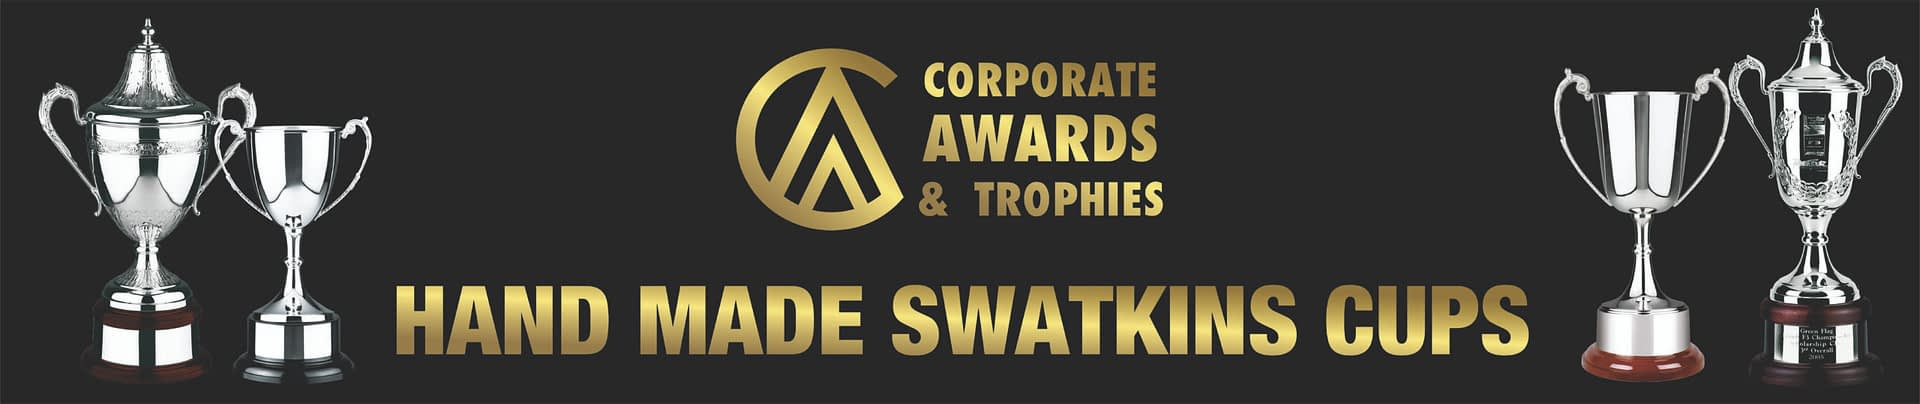 Quality Hand Made Swatkins Cups